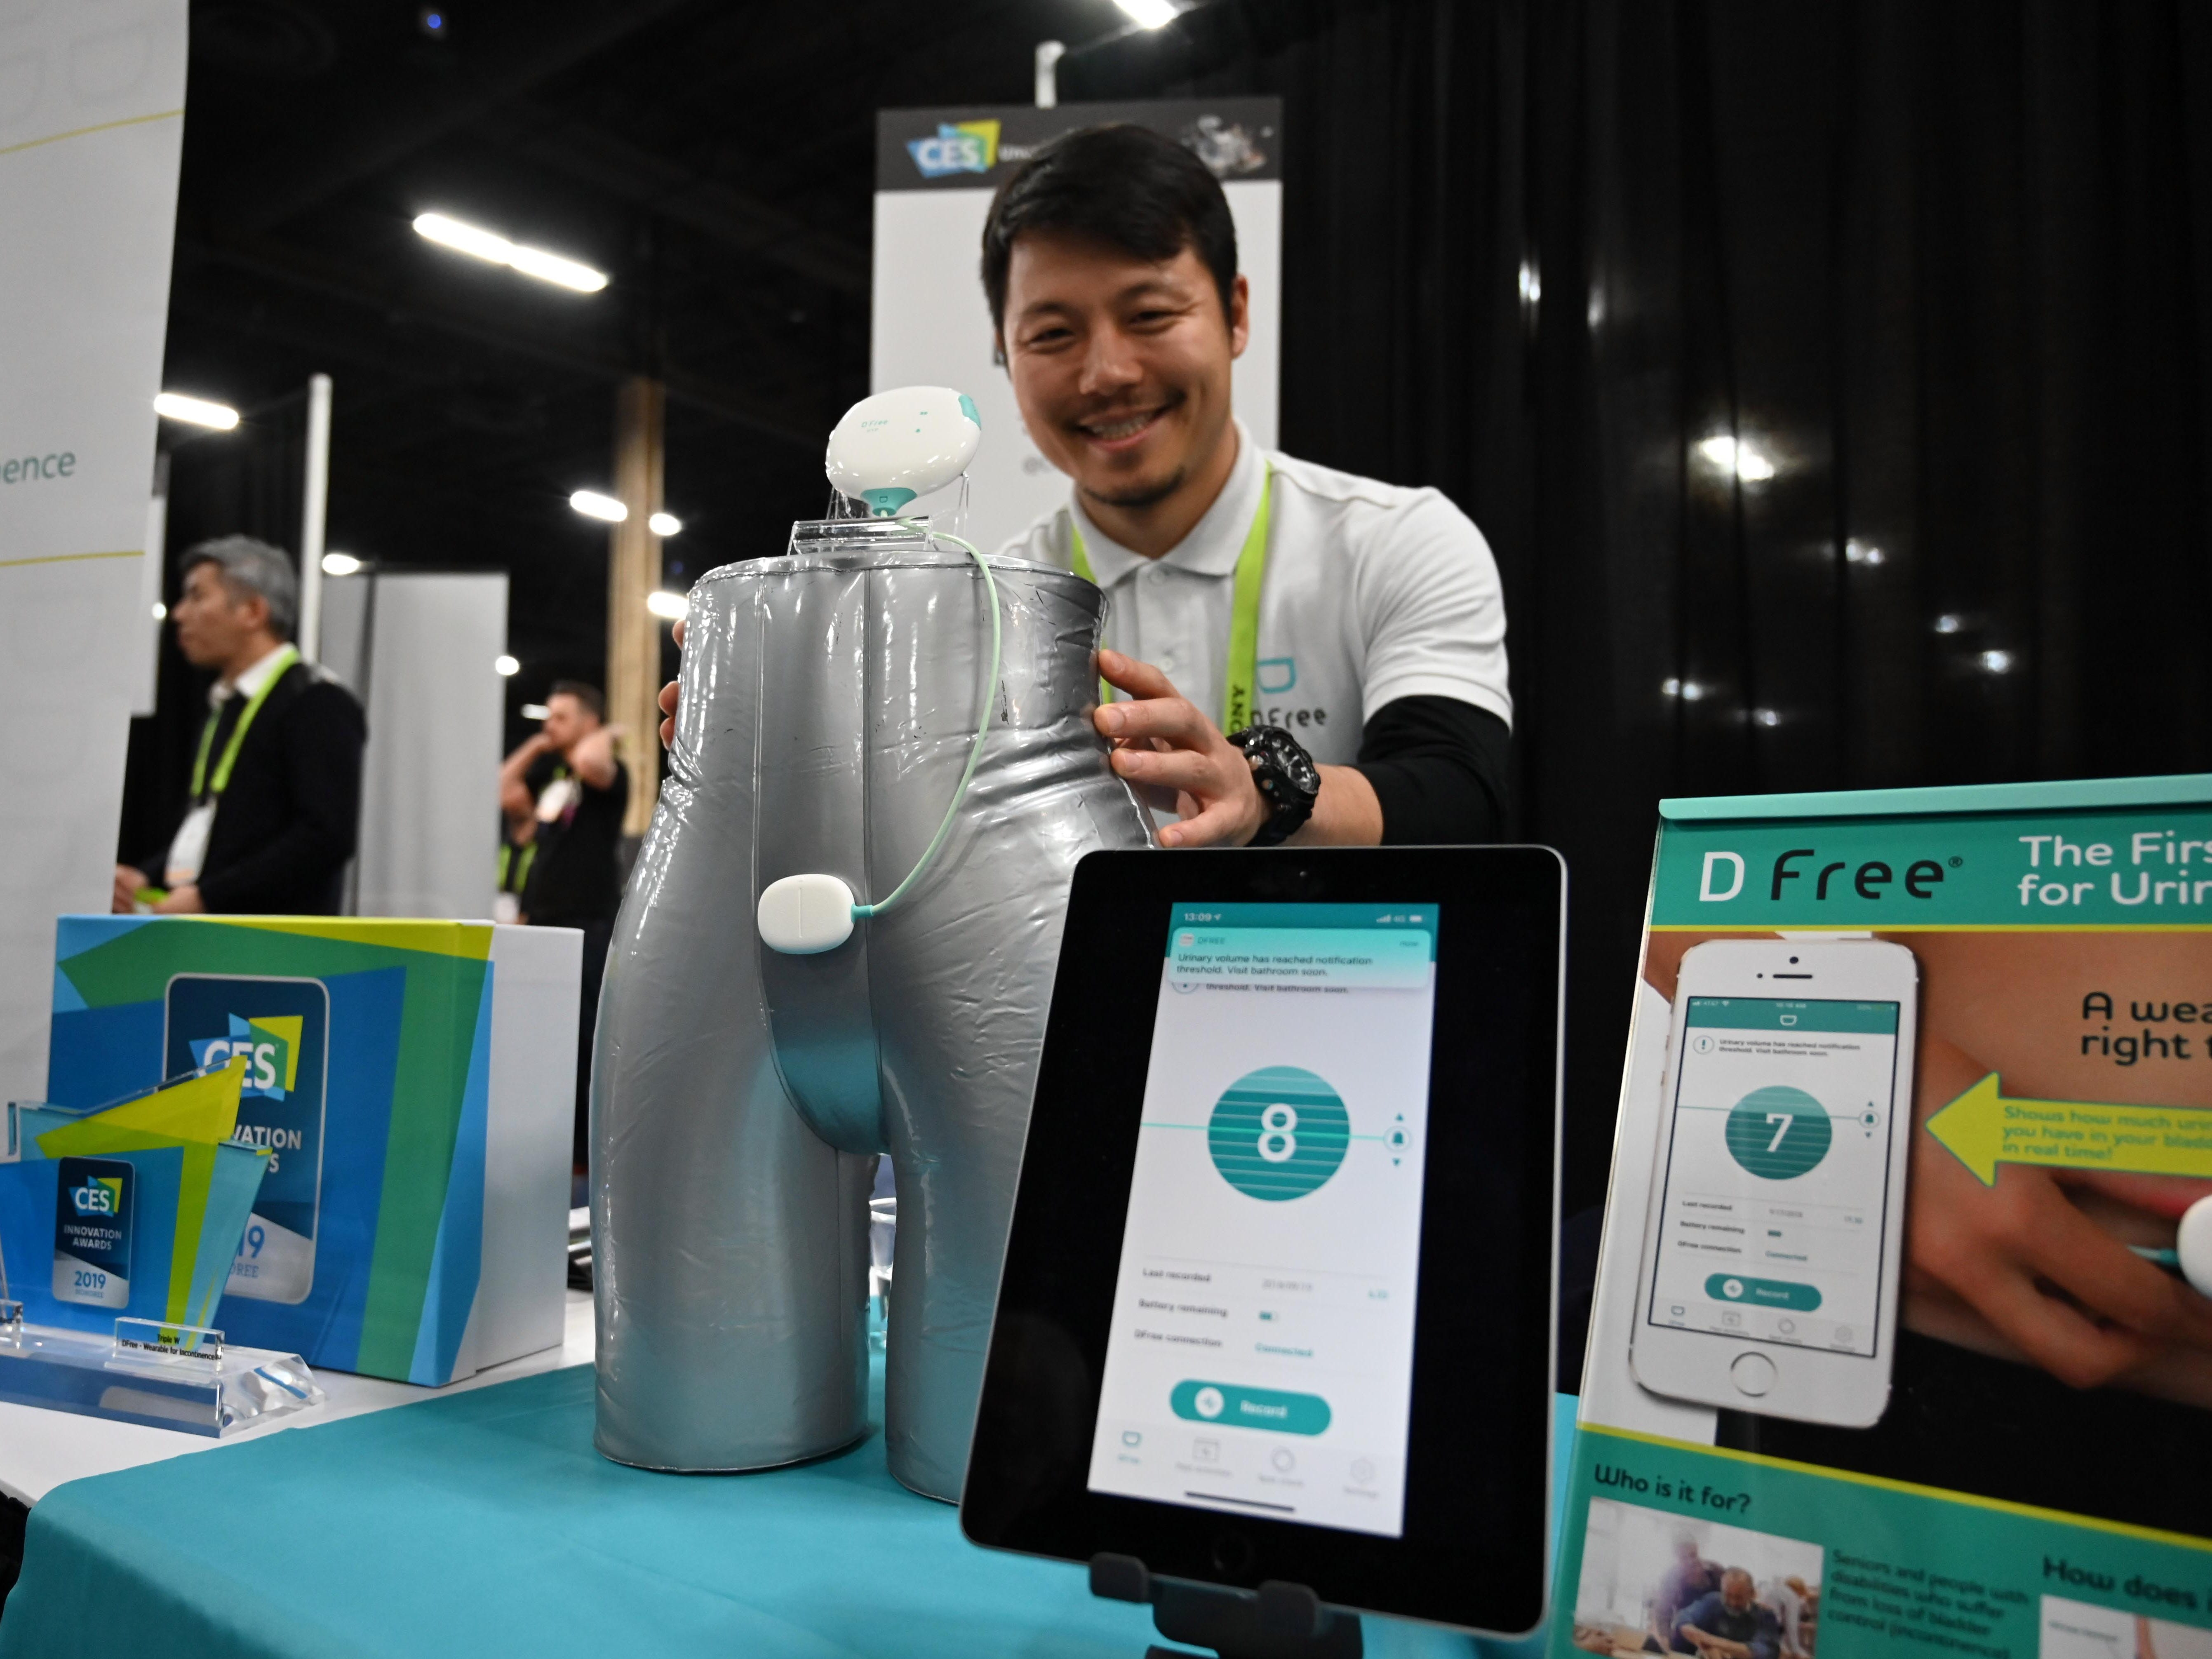 January 6, 2019; Las Vegas, NV, USA;  Atsushi Nakanishi with his product, DFree at CES Unveiled, a media preview event at the Mandalay Bay Convention Center. DFree is the first wearable device for incontinence, the company says. DFree detects the changes in bladder size and predicts urination timing. Mandatory Credit: Robert Hanashiro- USA TODAY NETWORK ORIG FILE ID:  20190106_ajw_usa_966.jpg